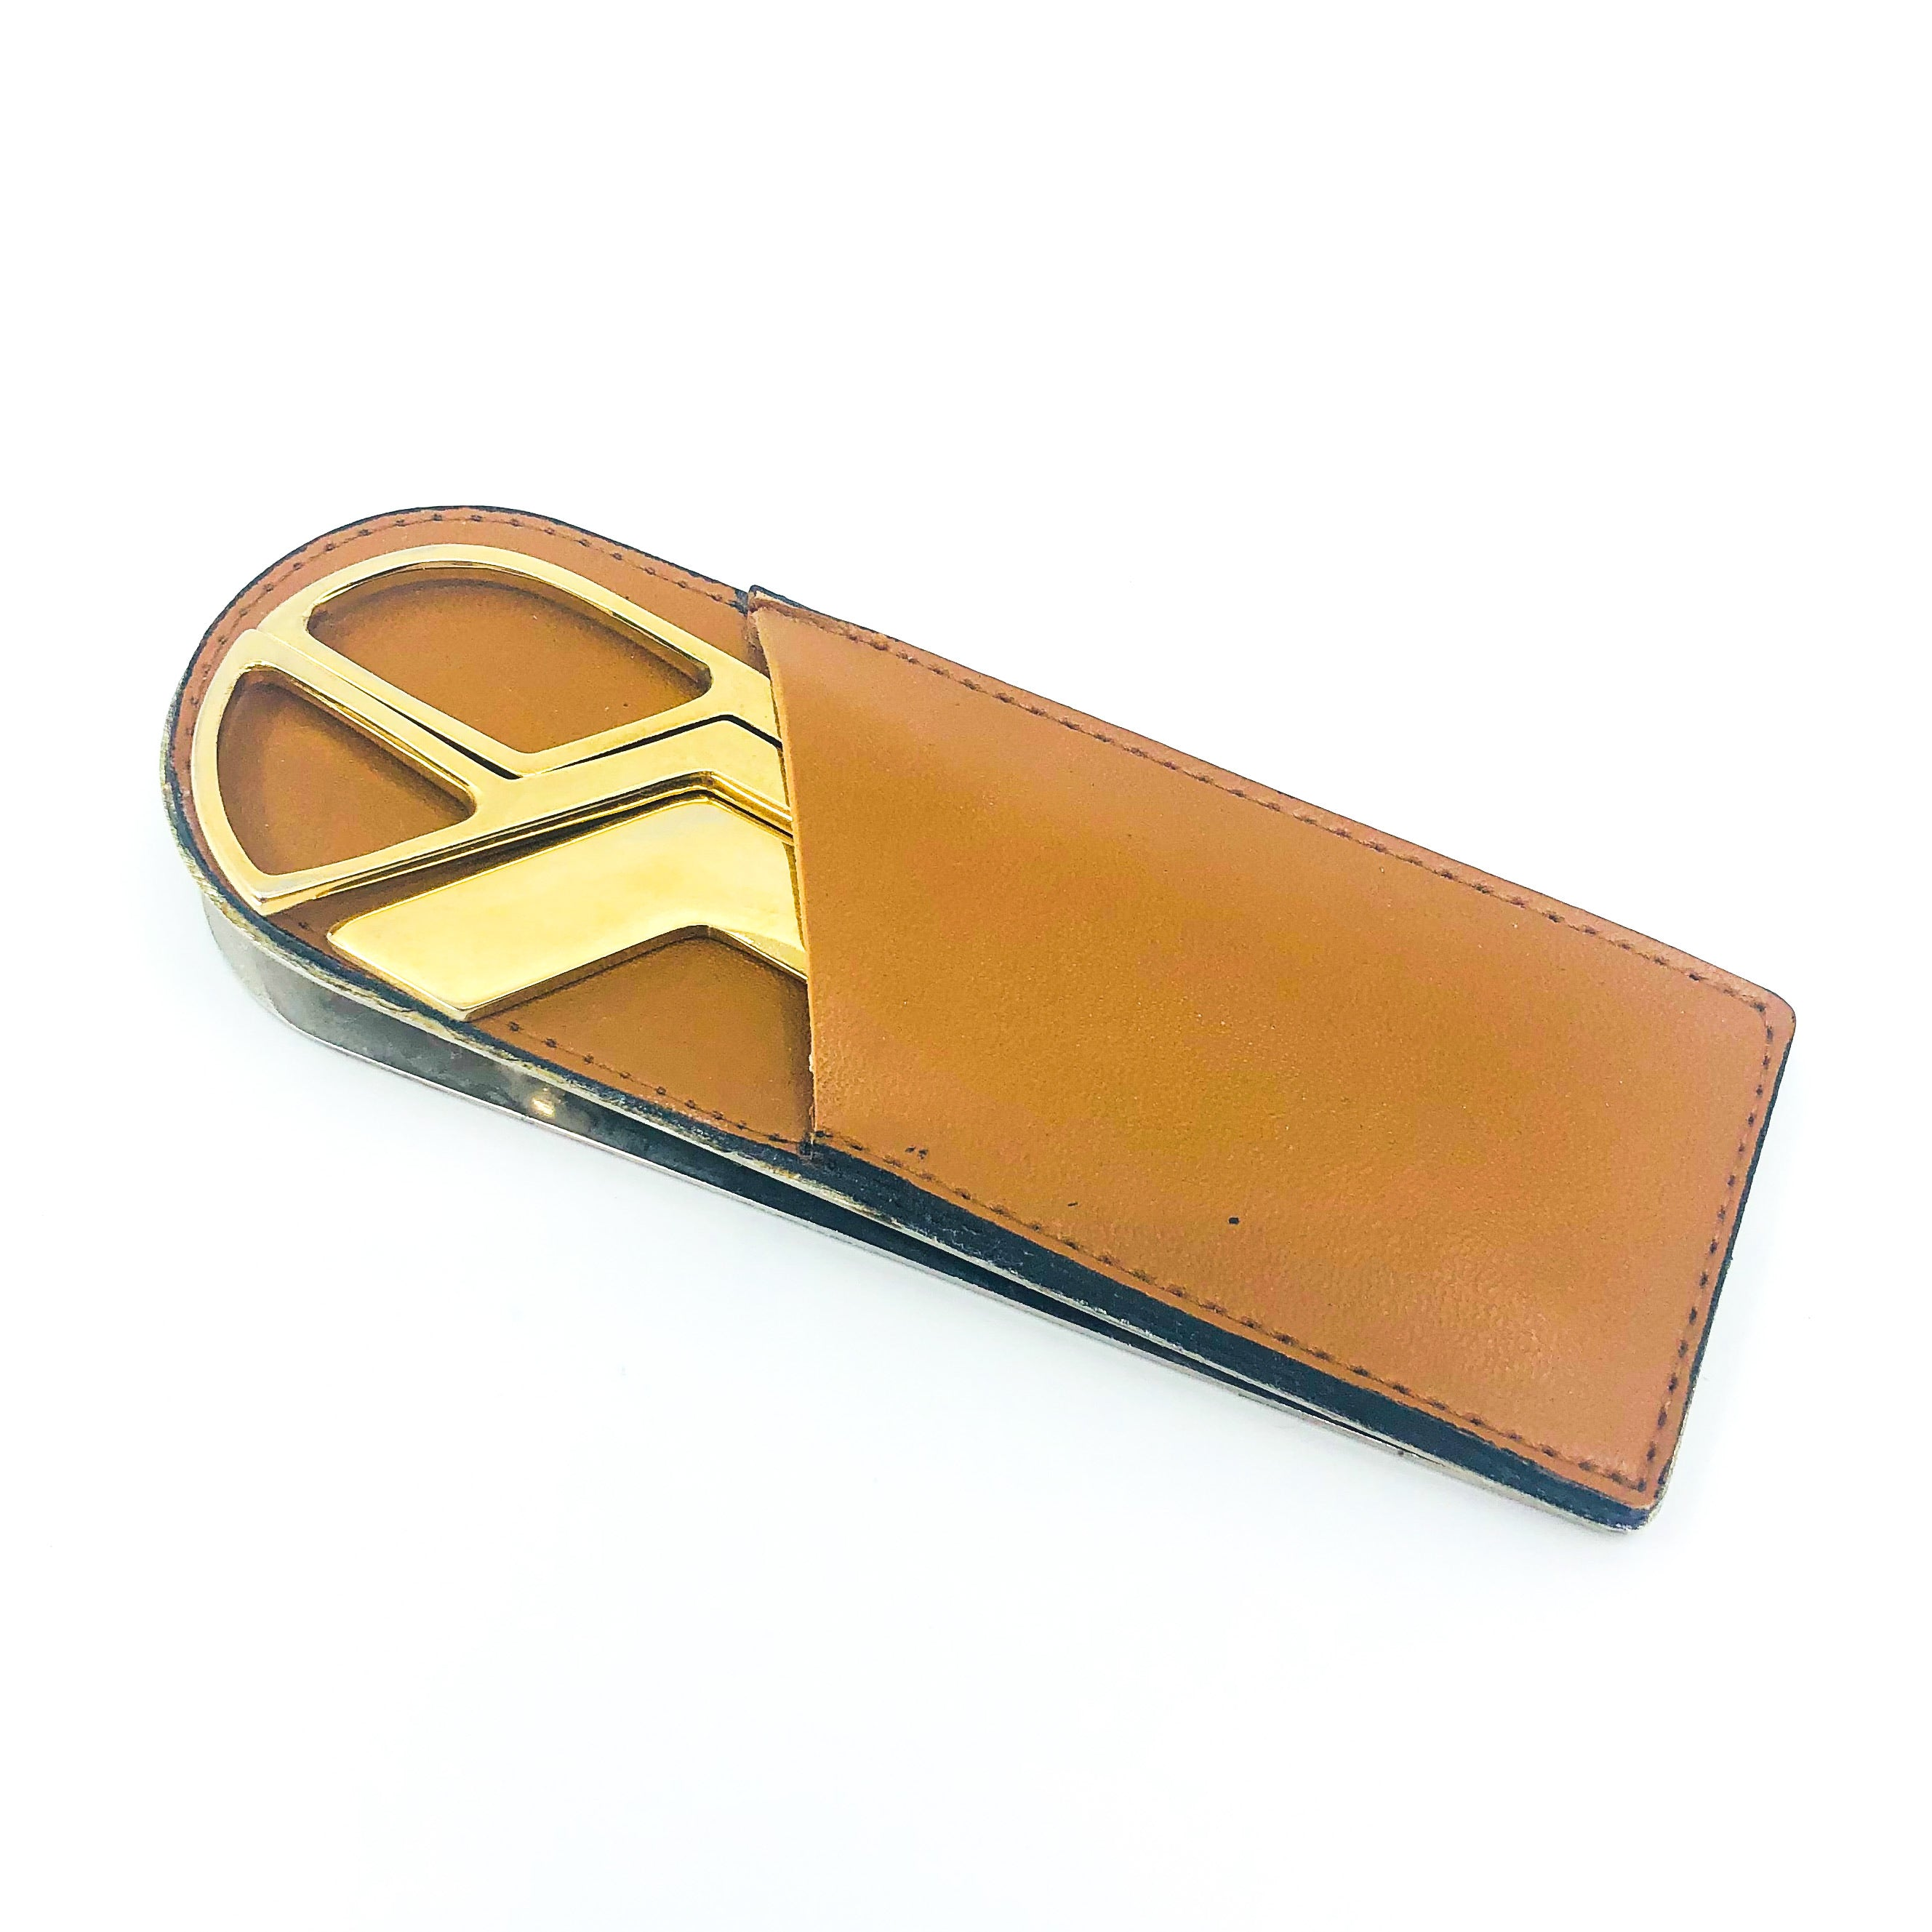 Vintage Leather Desk Organizer, Made in Italy